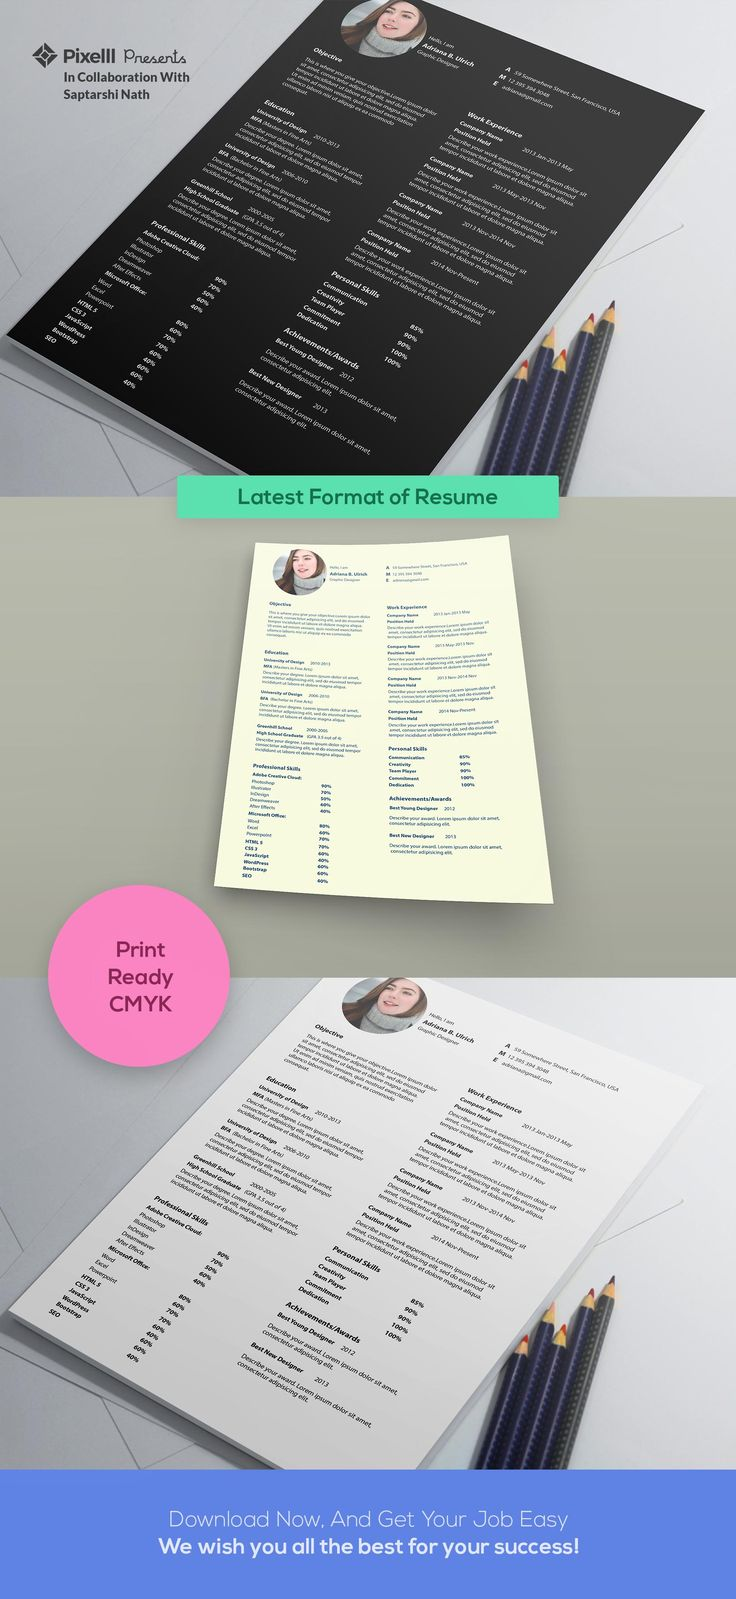 Famous 1.25 Button Template Big 10 Commandment Coloring Pages Clean 10 Minute Resume Builder 10 Tips For Writing A Resume Young 10 Words To Put On Your Resume Soft15 Year Old First Job Resume The 25  Best Ideas About Format Of Resume On Pinterest | Resume ..